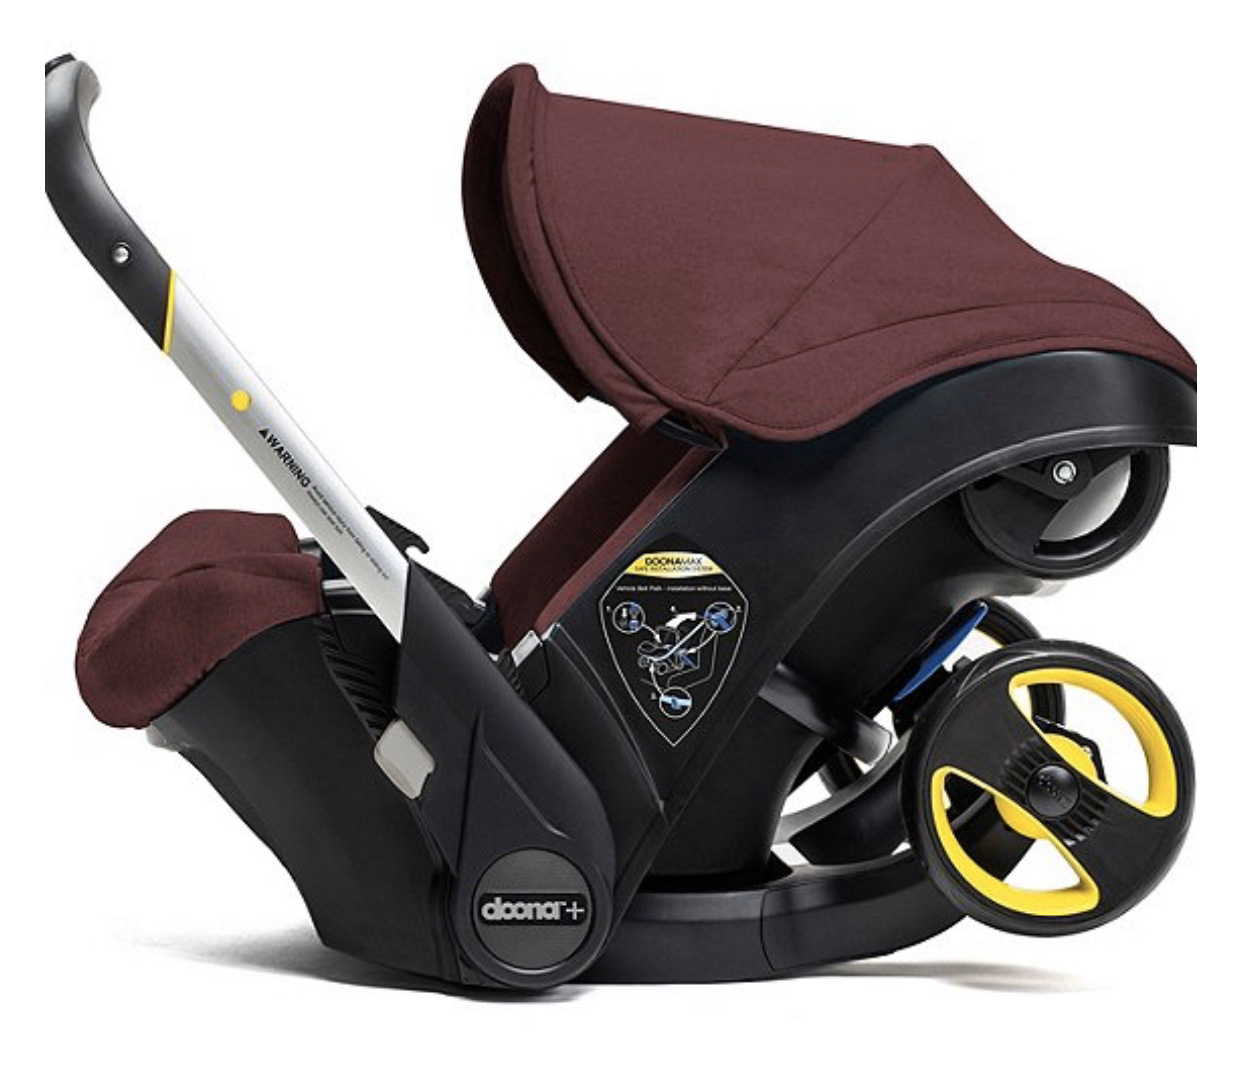 Doona From Car Seat To Stroller In Seconds Burgundy